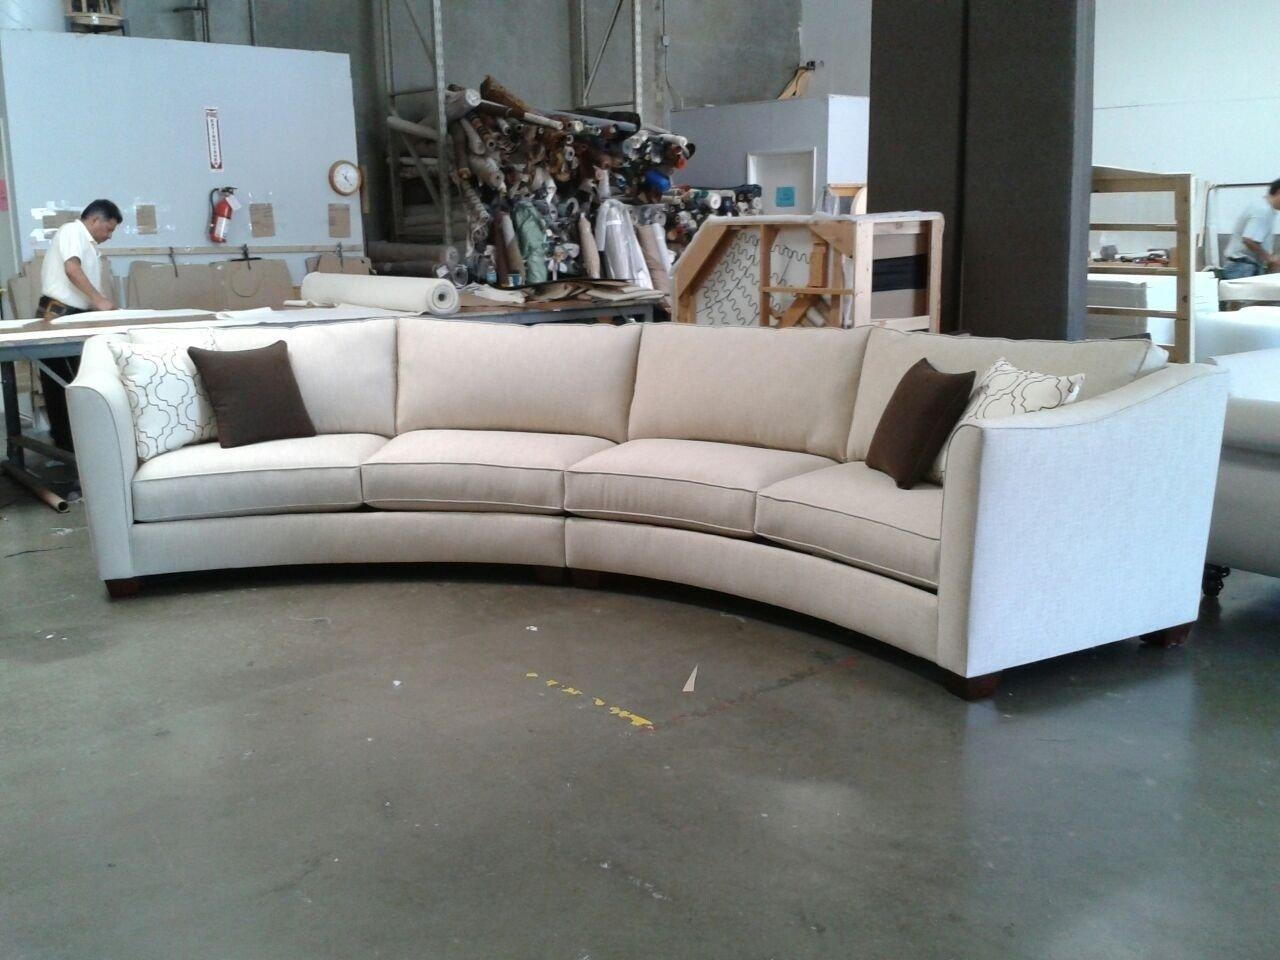 Curved Sectional Sofa: Glamour For Interior — Home Design Pertaining To Circular Sectionals (Image 6 of 15)